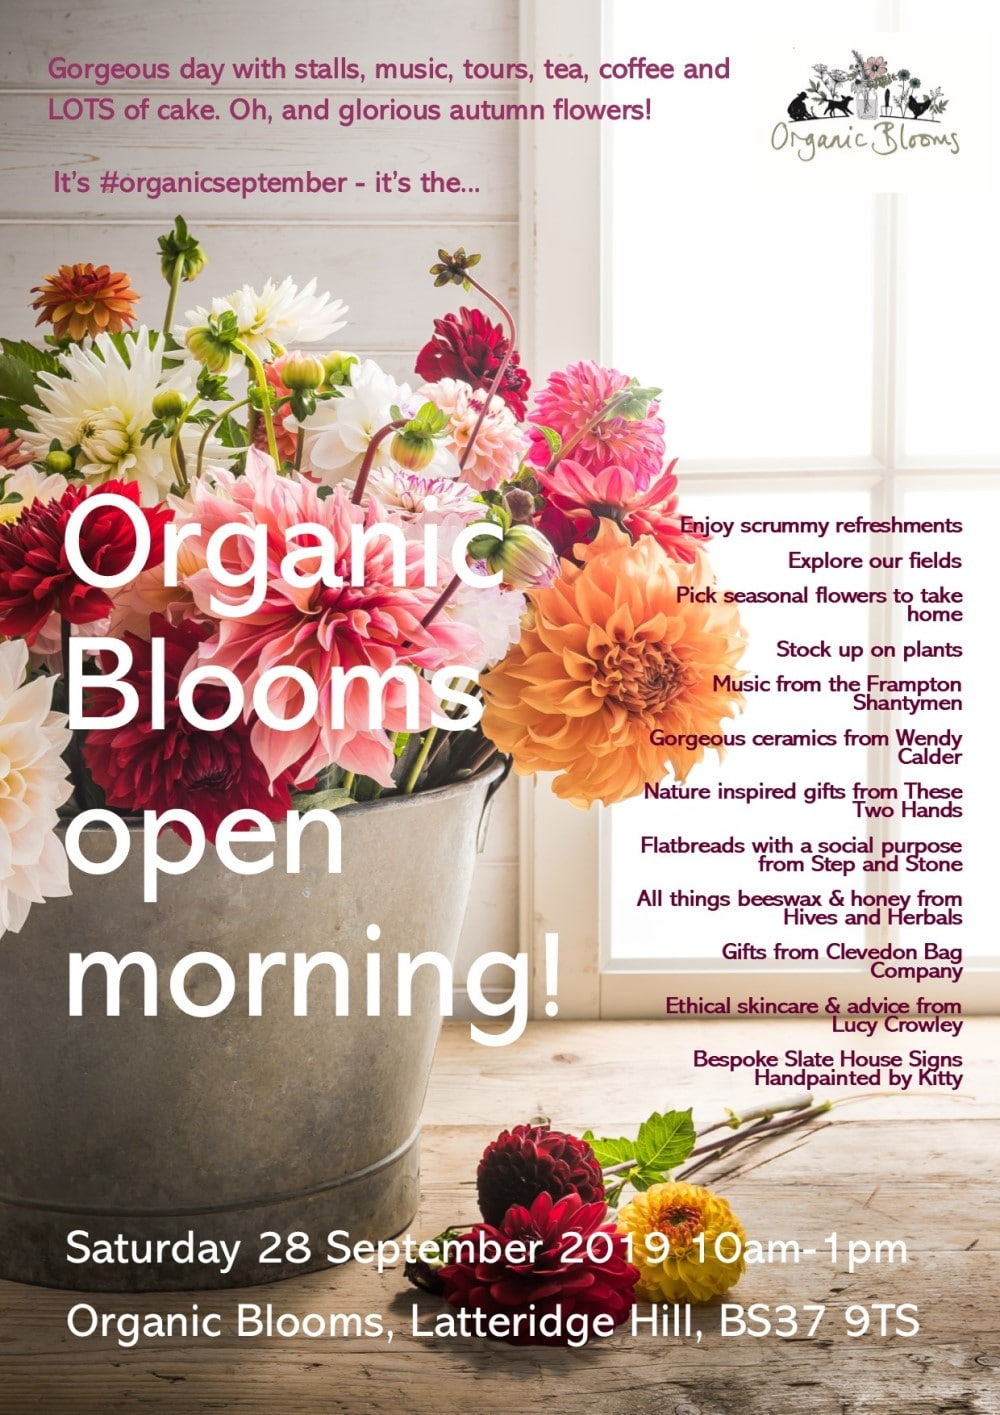 Our favourite day of the year - Organic Blooms open morning